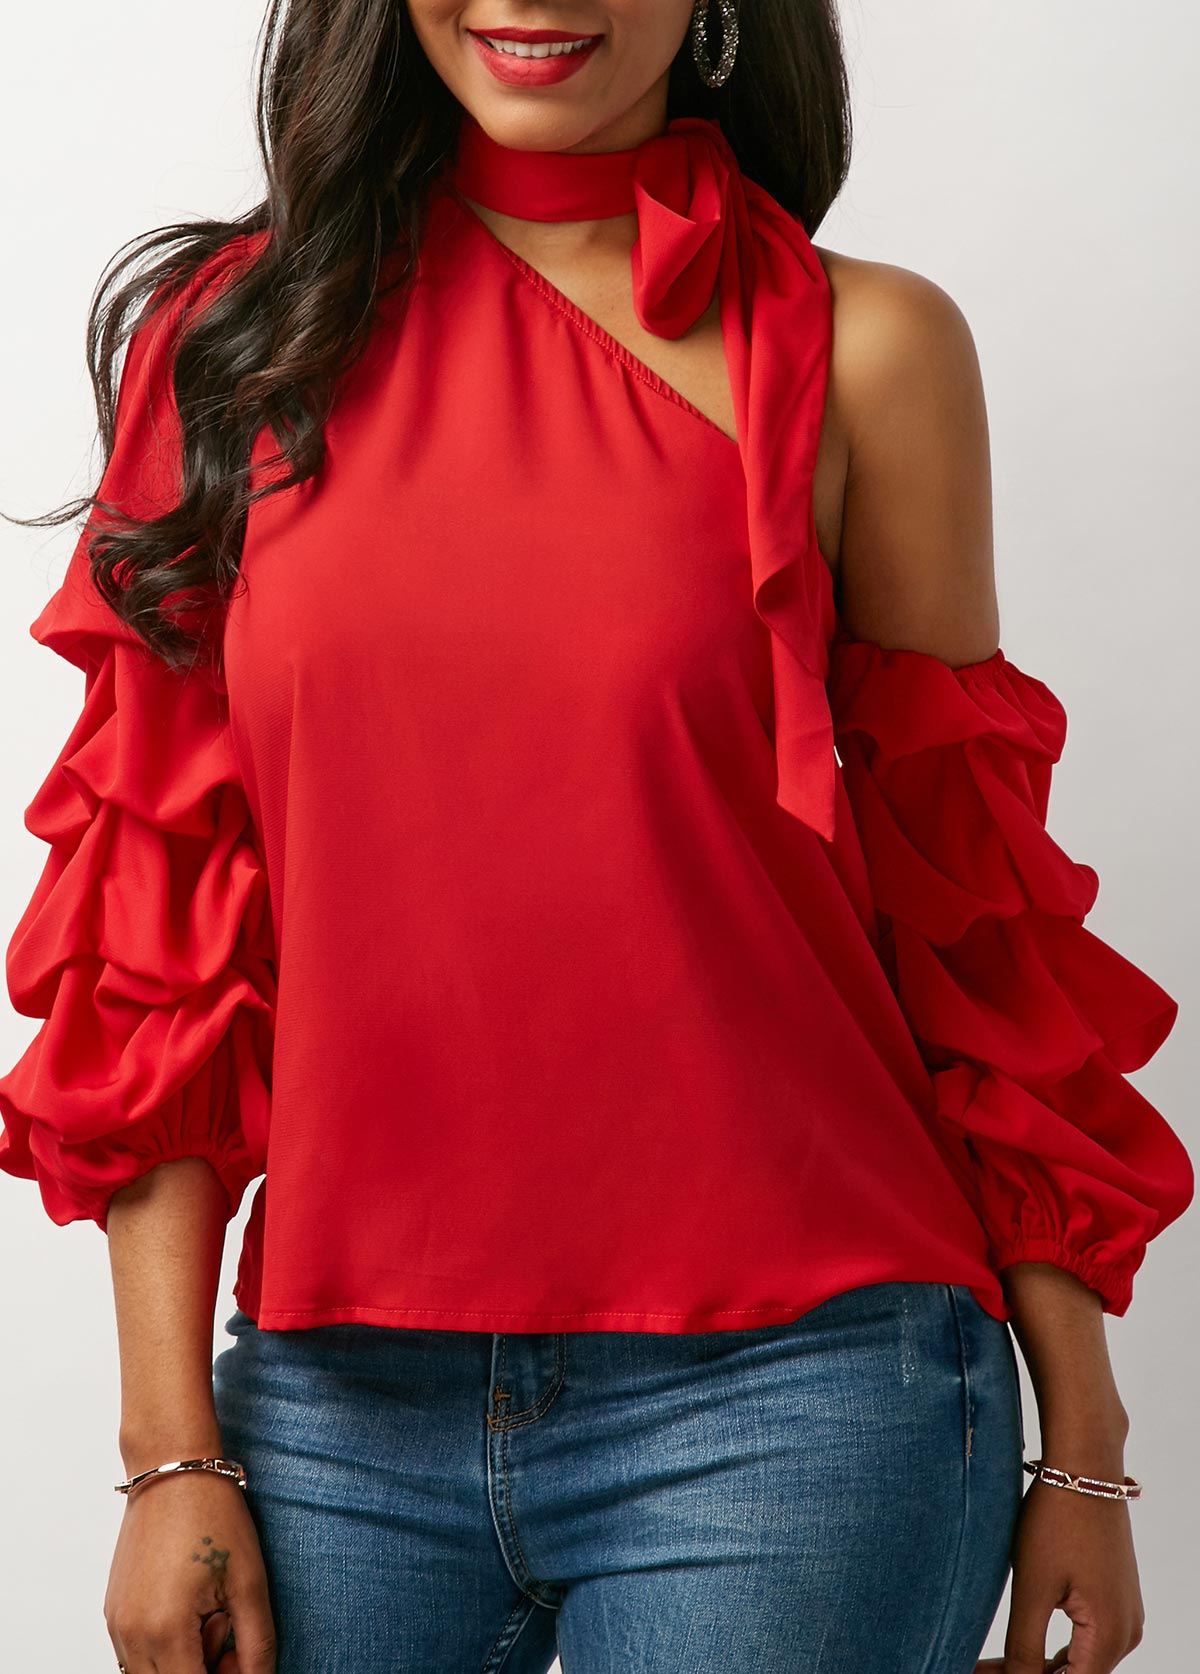 Red Blouse Adds Strong Effects to Your Persona